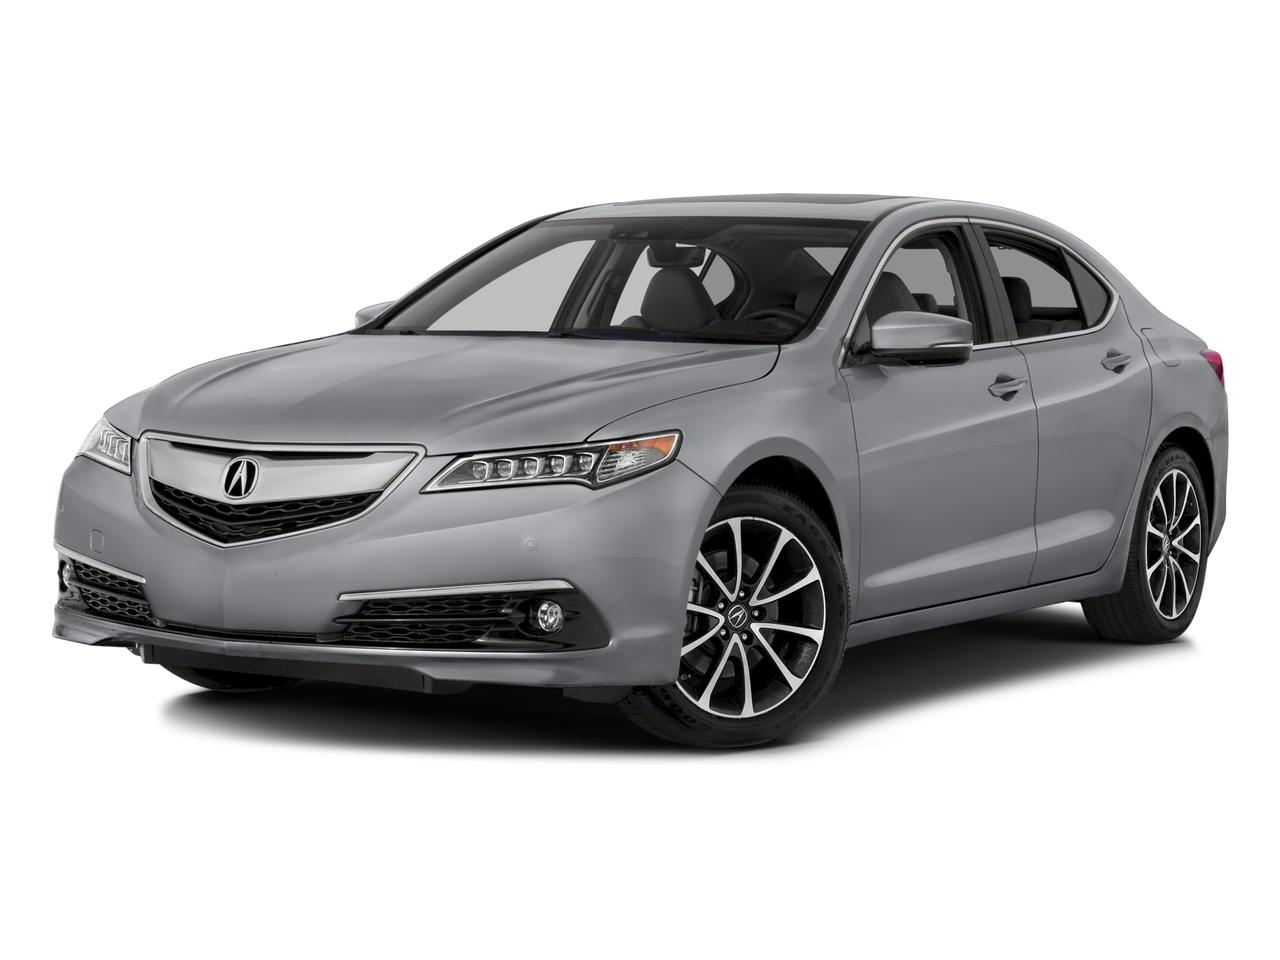 2016 Acura TLX Vehicle Photo in Houston, TX 77074